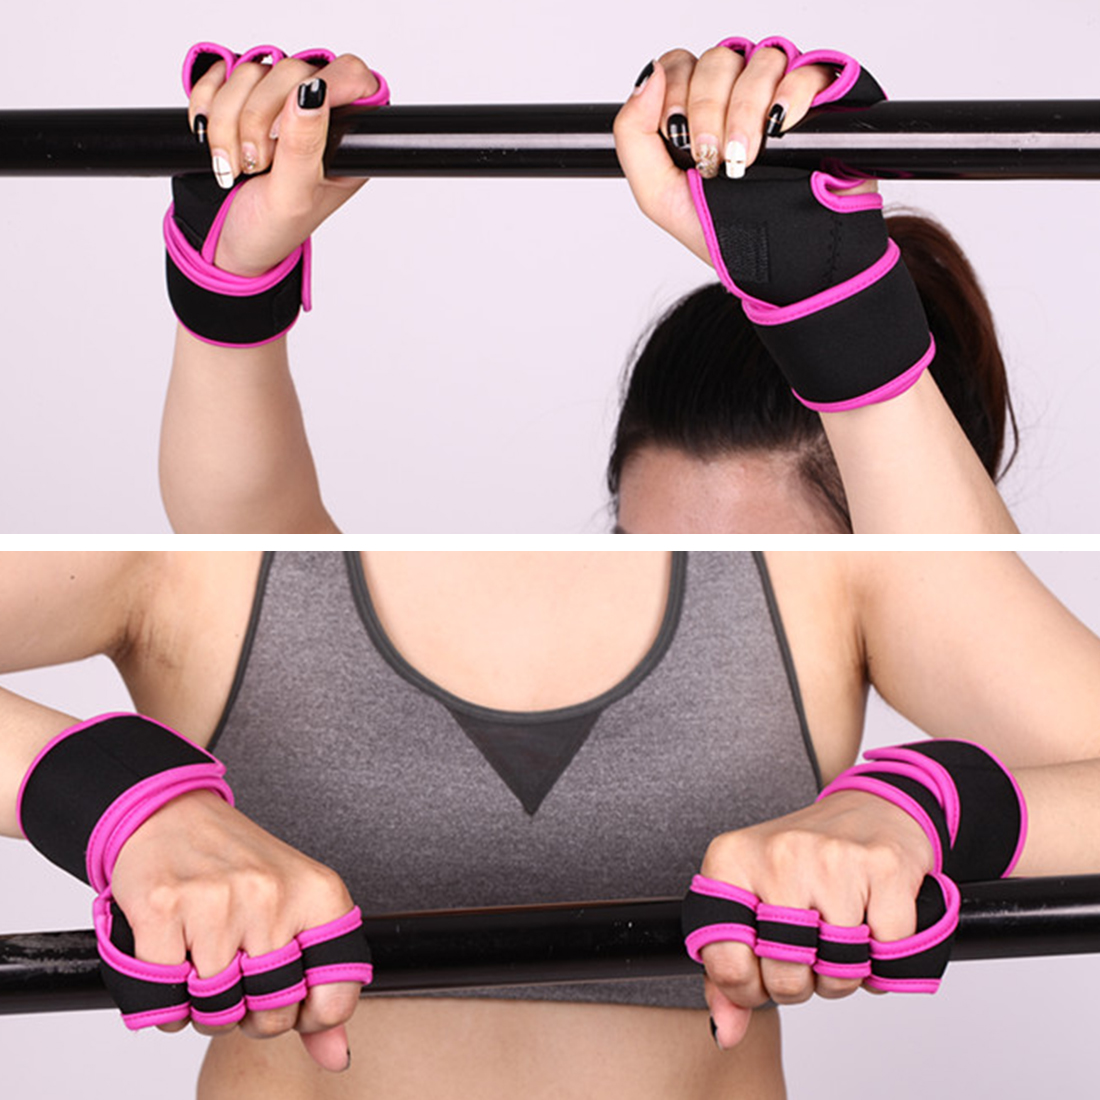 Practical Wrist Strap Fitness Gym Fitness Strap Hand Peace Fingers Palm Wrist Protector Dumbbells Horizontal Bar Sports Gloves practical wrist strap fitness gym fitness strap hand peace fingers palm wrist protector dumbbells horizontal bar sports gloves